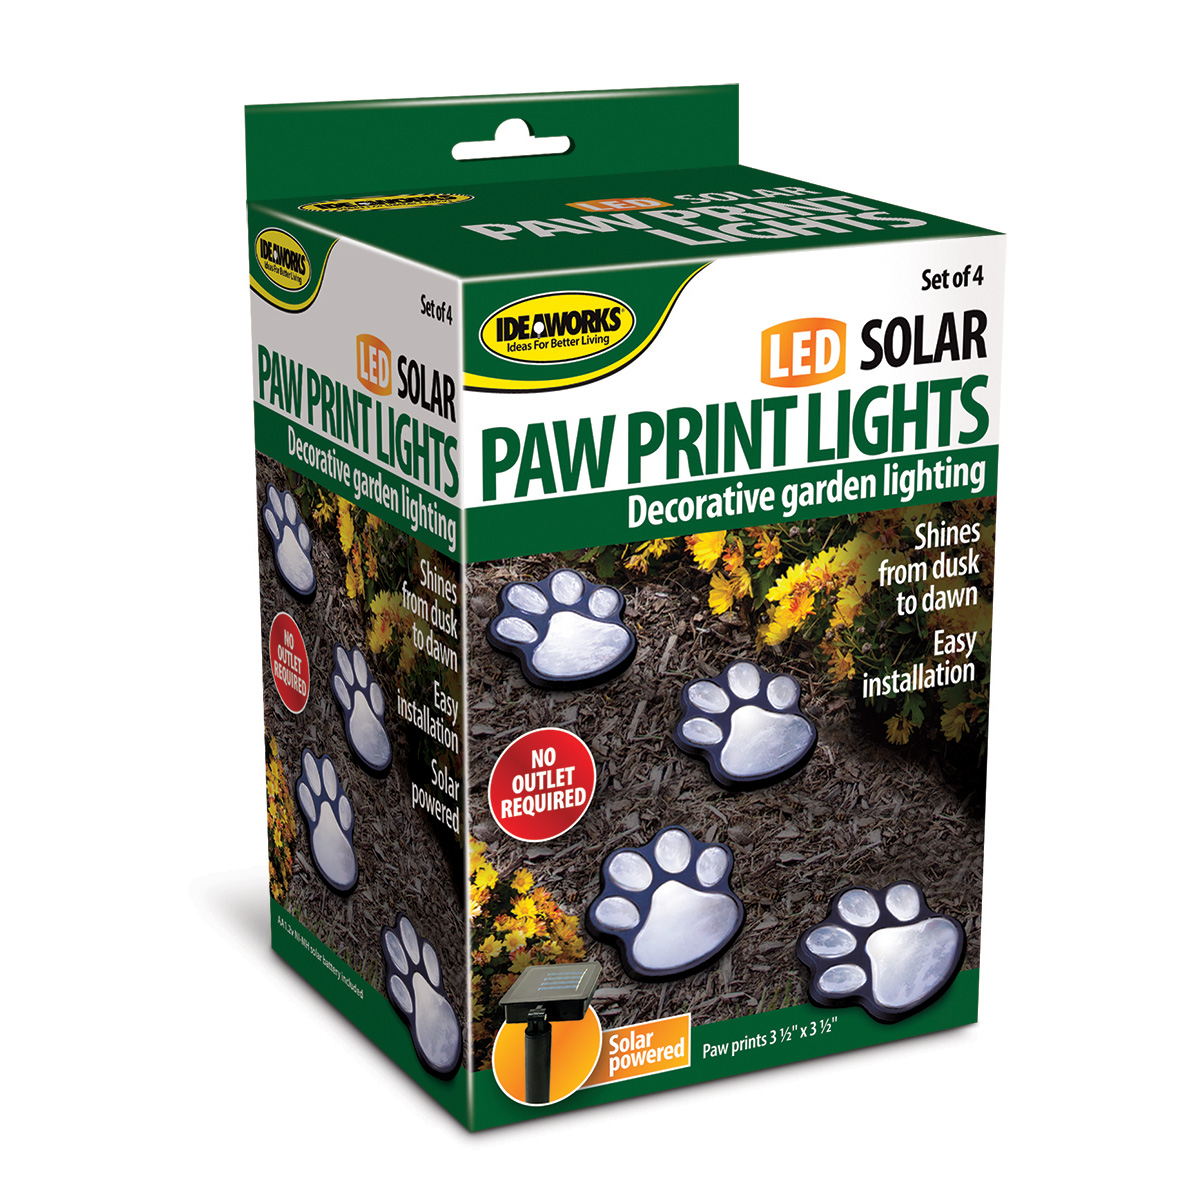 Ideawork's Set of 4 LED Pathway Paw Print Solar Lights by Solar Lights